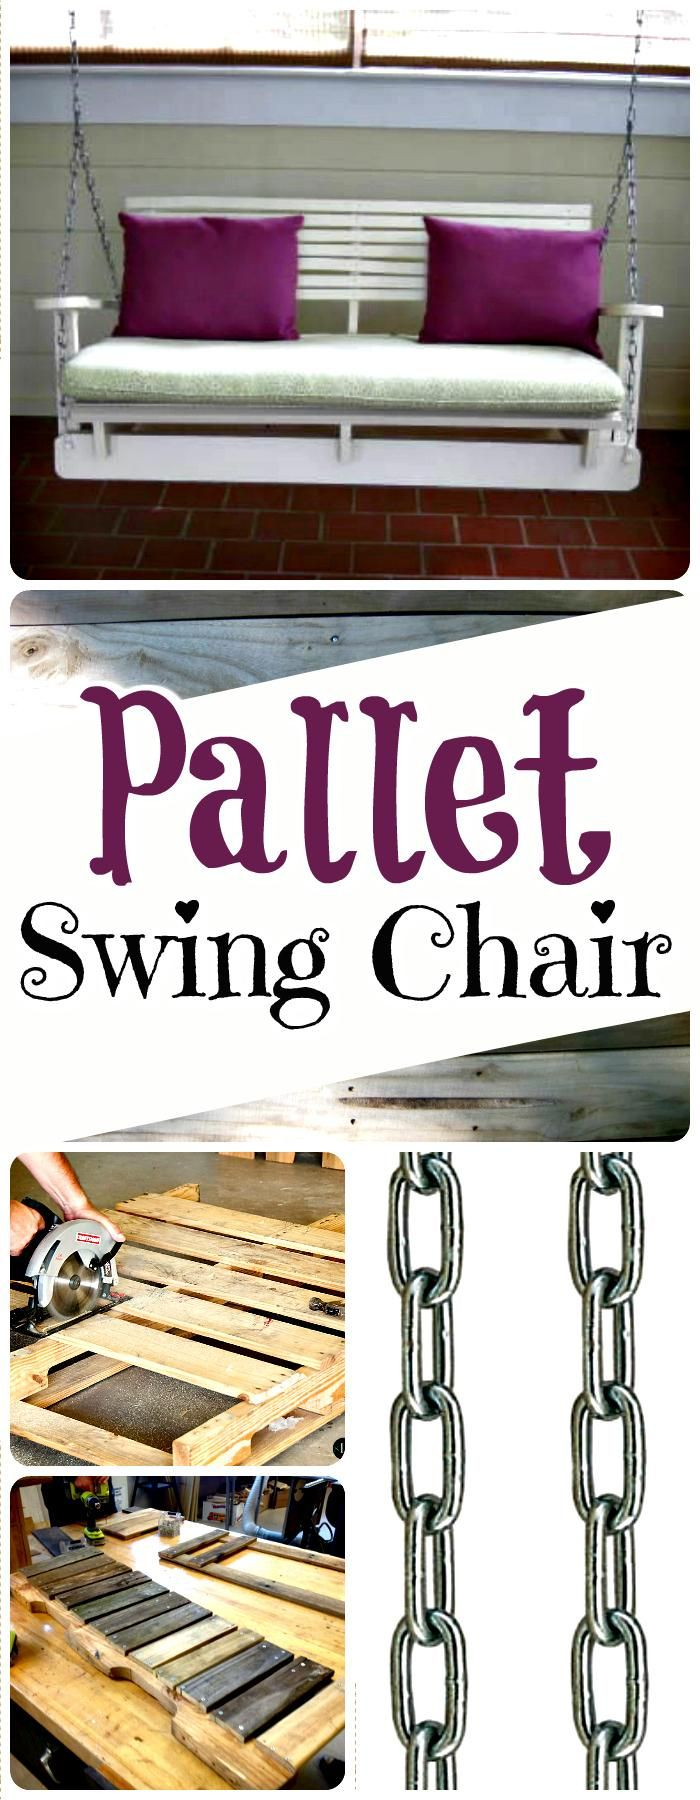 Self-Made & Installed Pallet Swing Chair - 150 Best DIY Pallet Projects and Pallet Furniture Crafts - Page 4 of 75 - DIY & Crafts